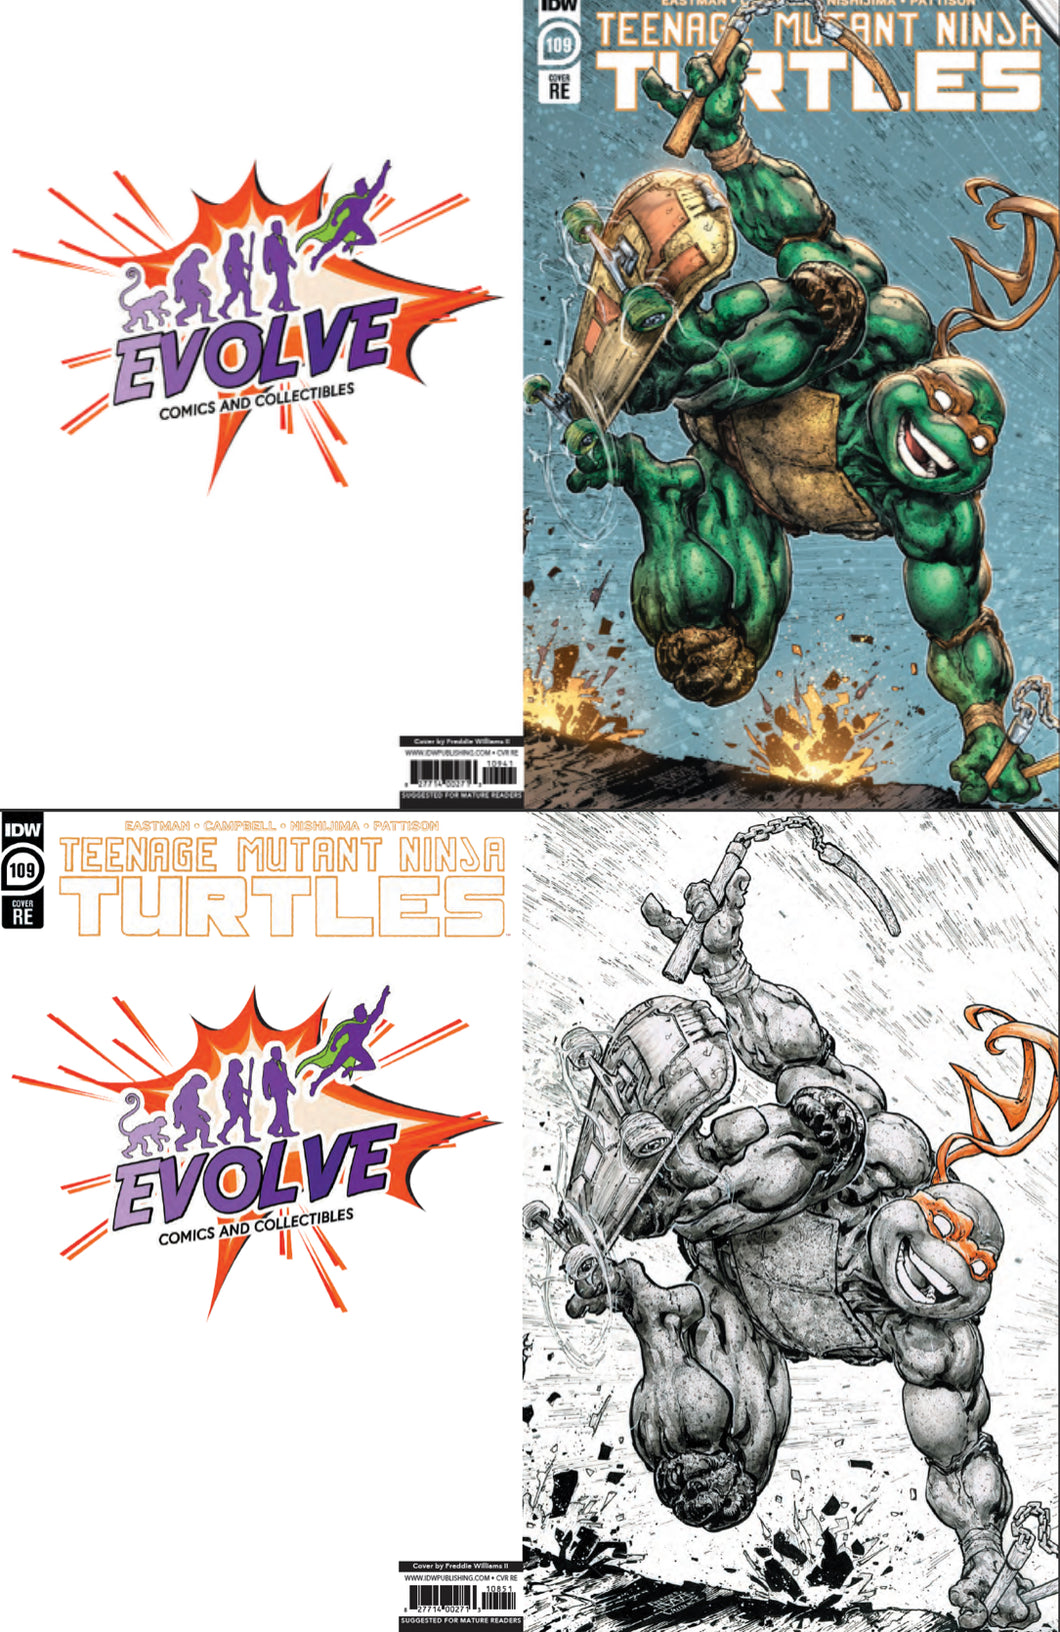 Teenage Mutant Ninja Turtles 109 Evolve Comics And Collectibles Exclusive Set